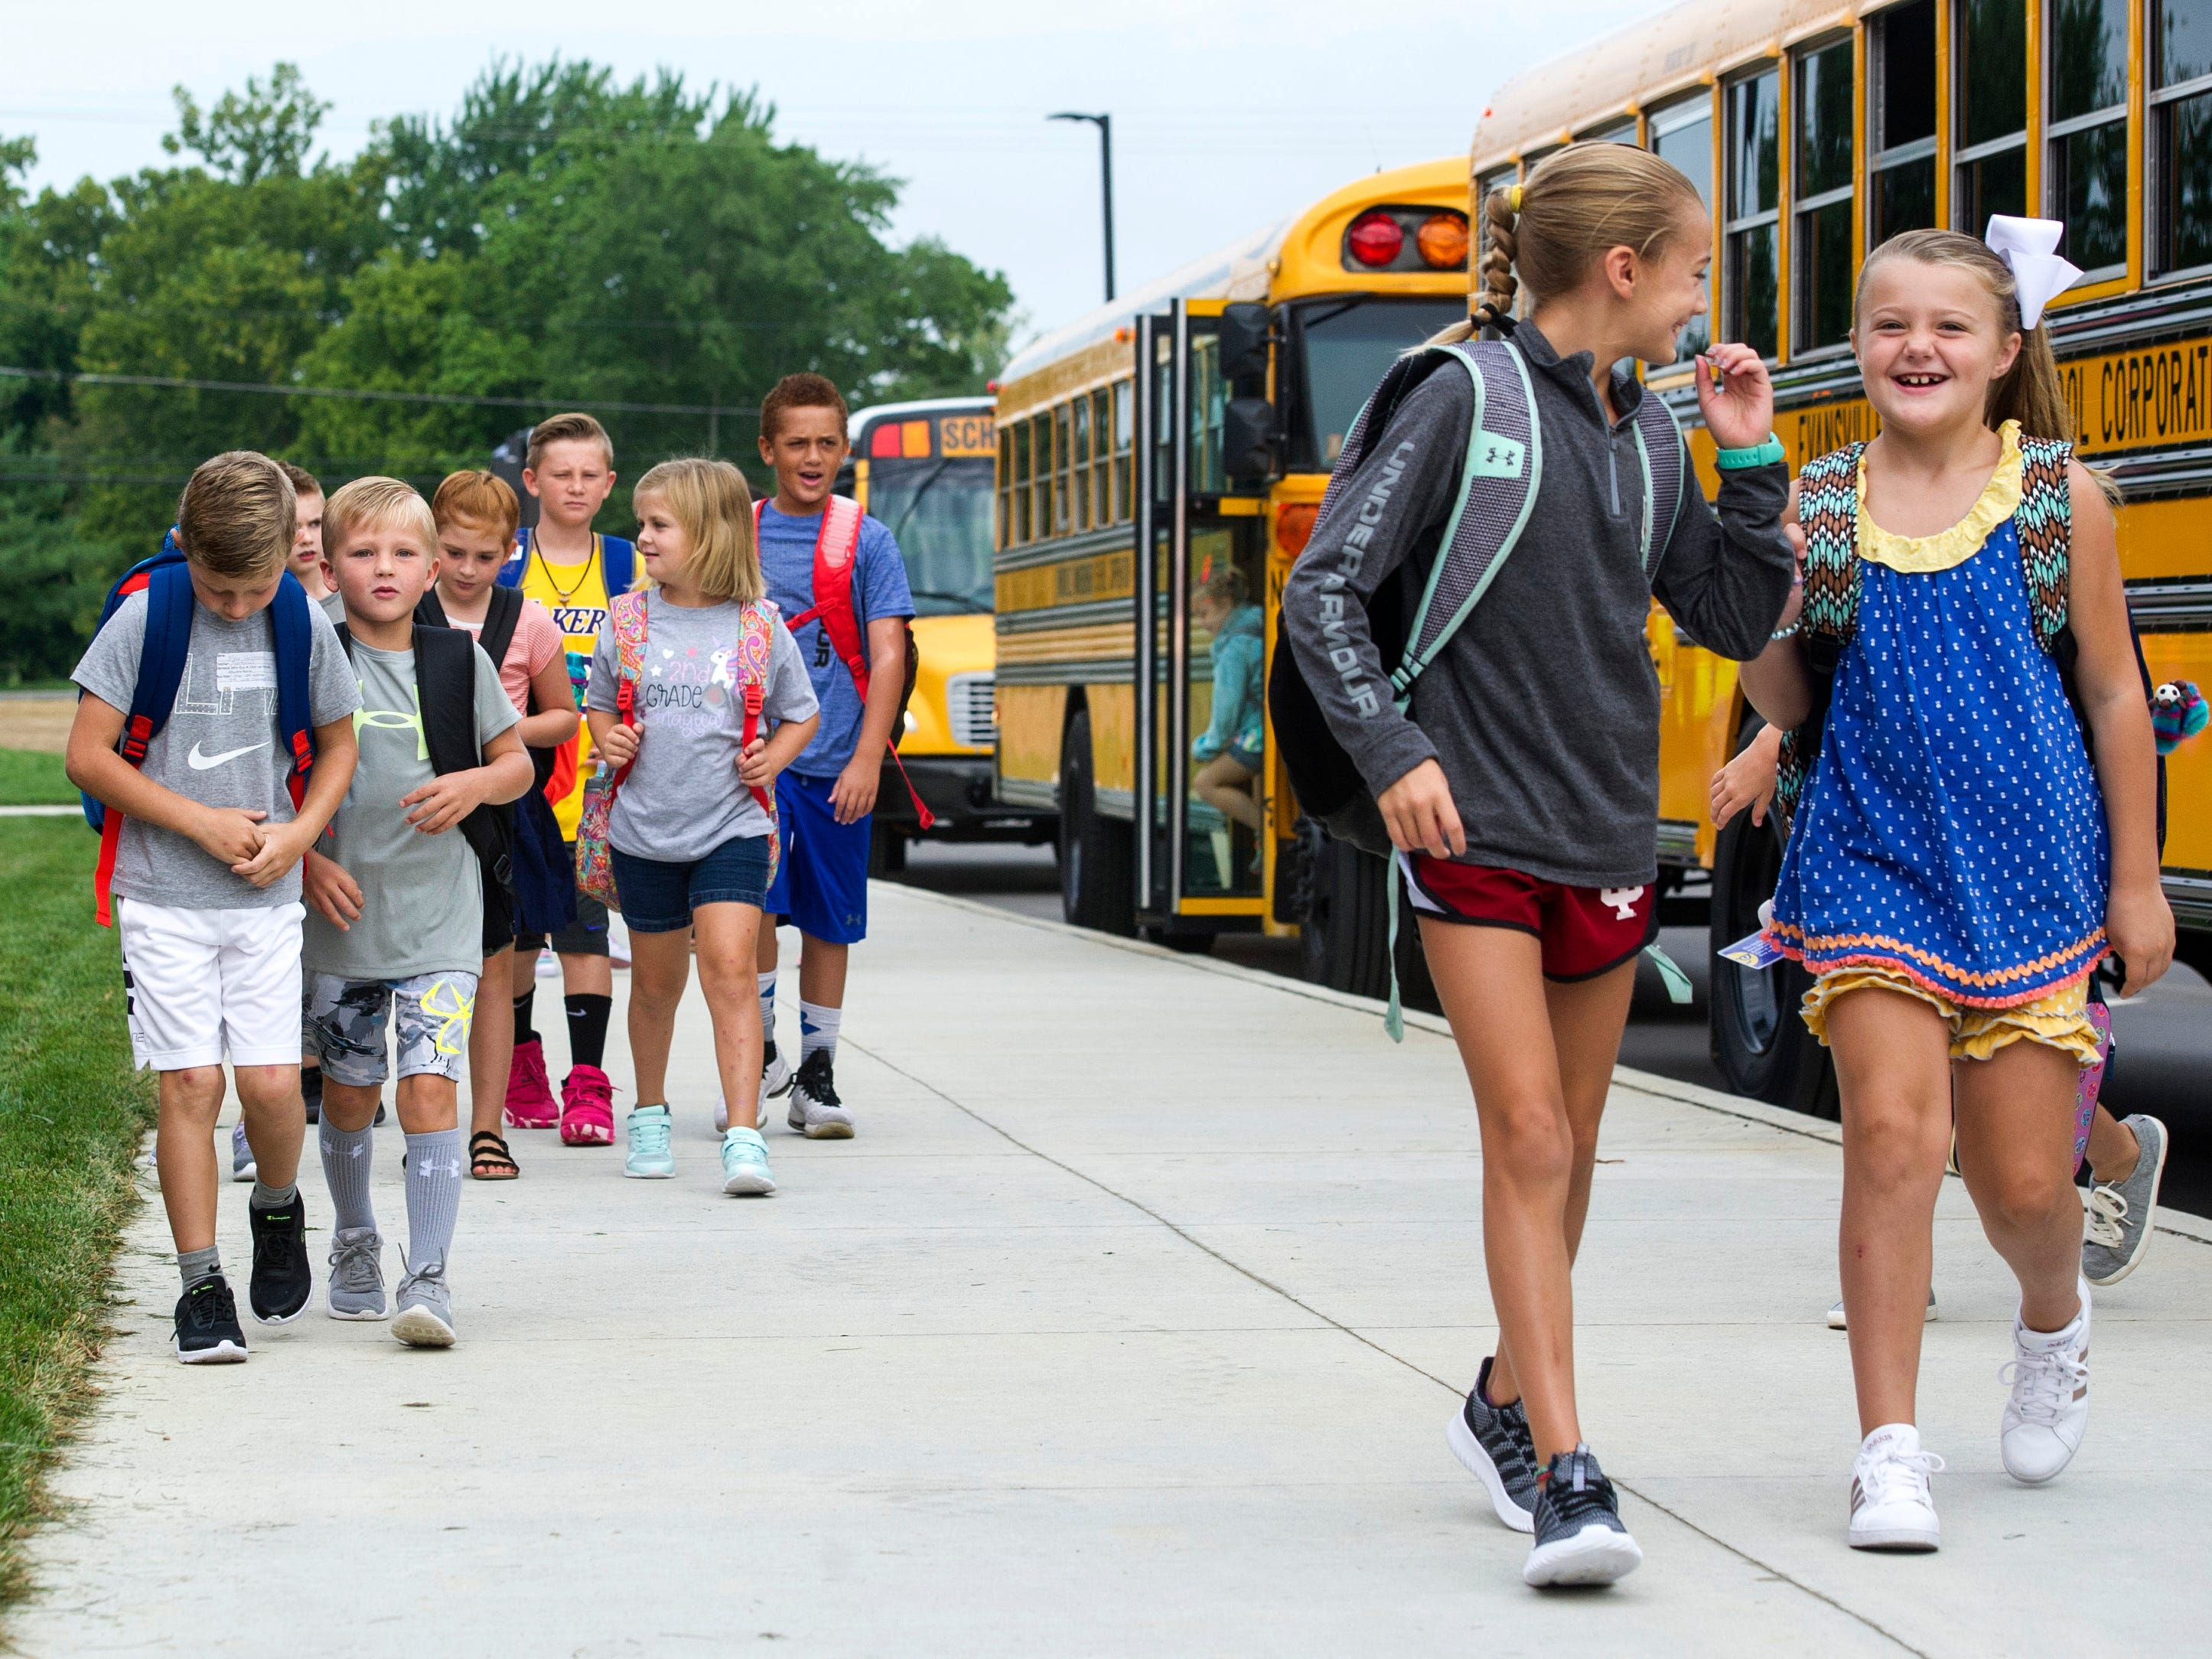 Students race off the buses at the new McCutchanville Elementary school for the first day of school Wednesday, August 8, 2018.